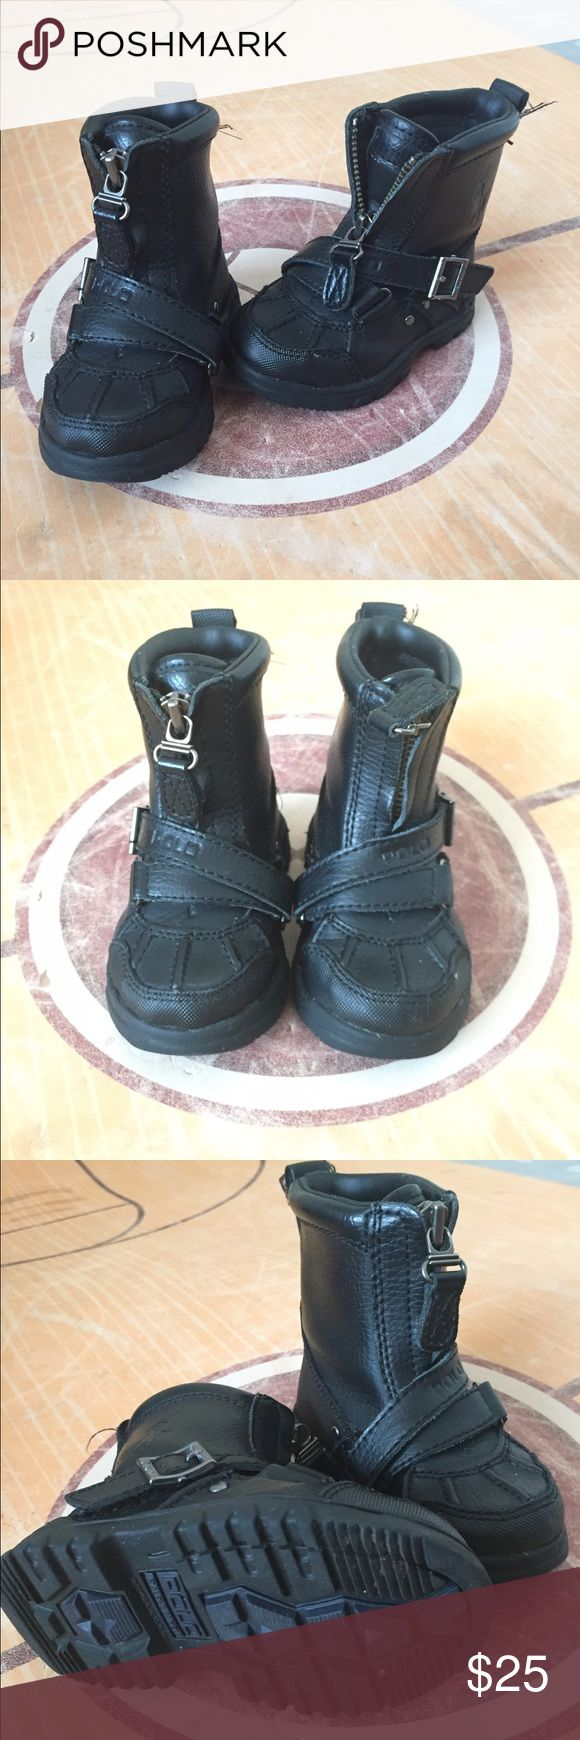 Polo Ralph Lauren Boots Excellent condition! Great for the upcoming months Polo by Ralph Lauren Shoes